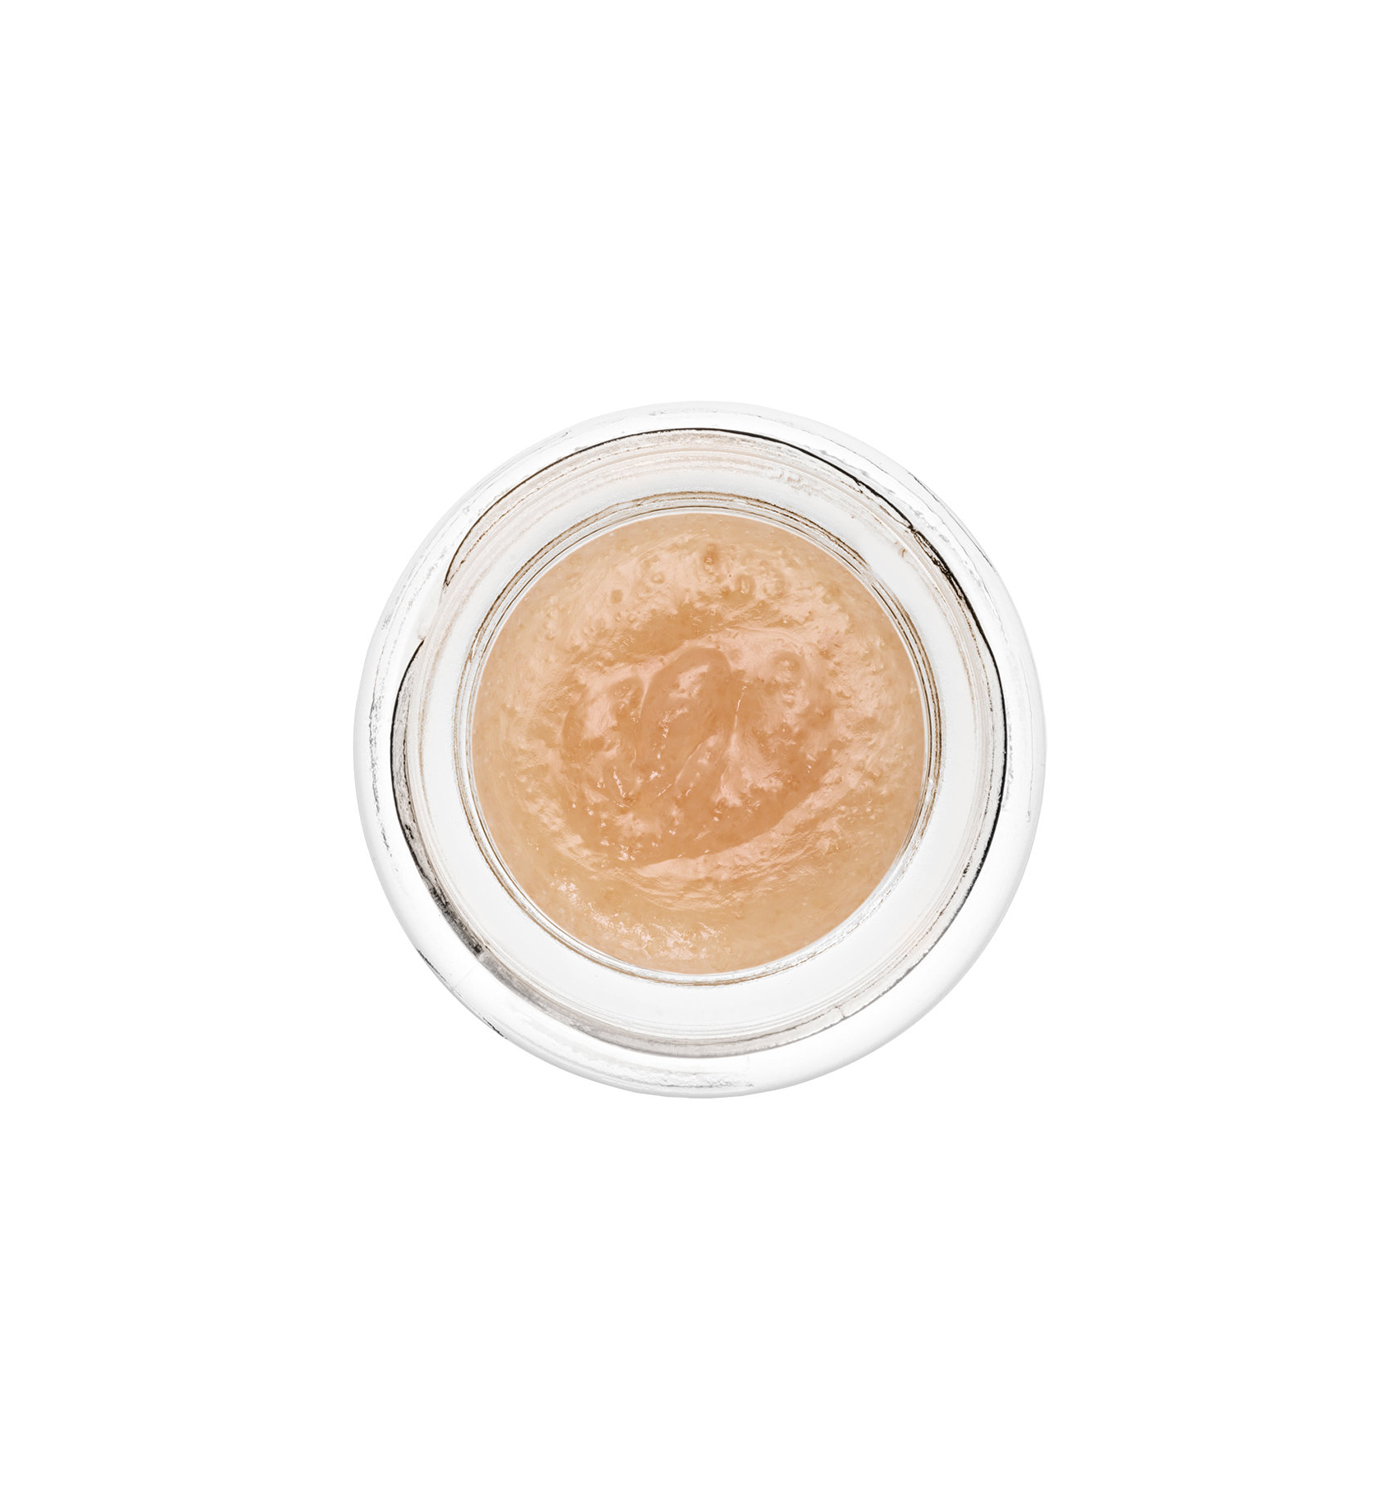 H&M Beauty Clean Canvas Lip Scrub